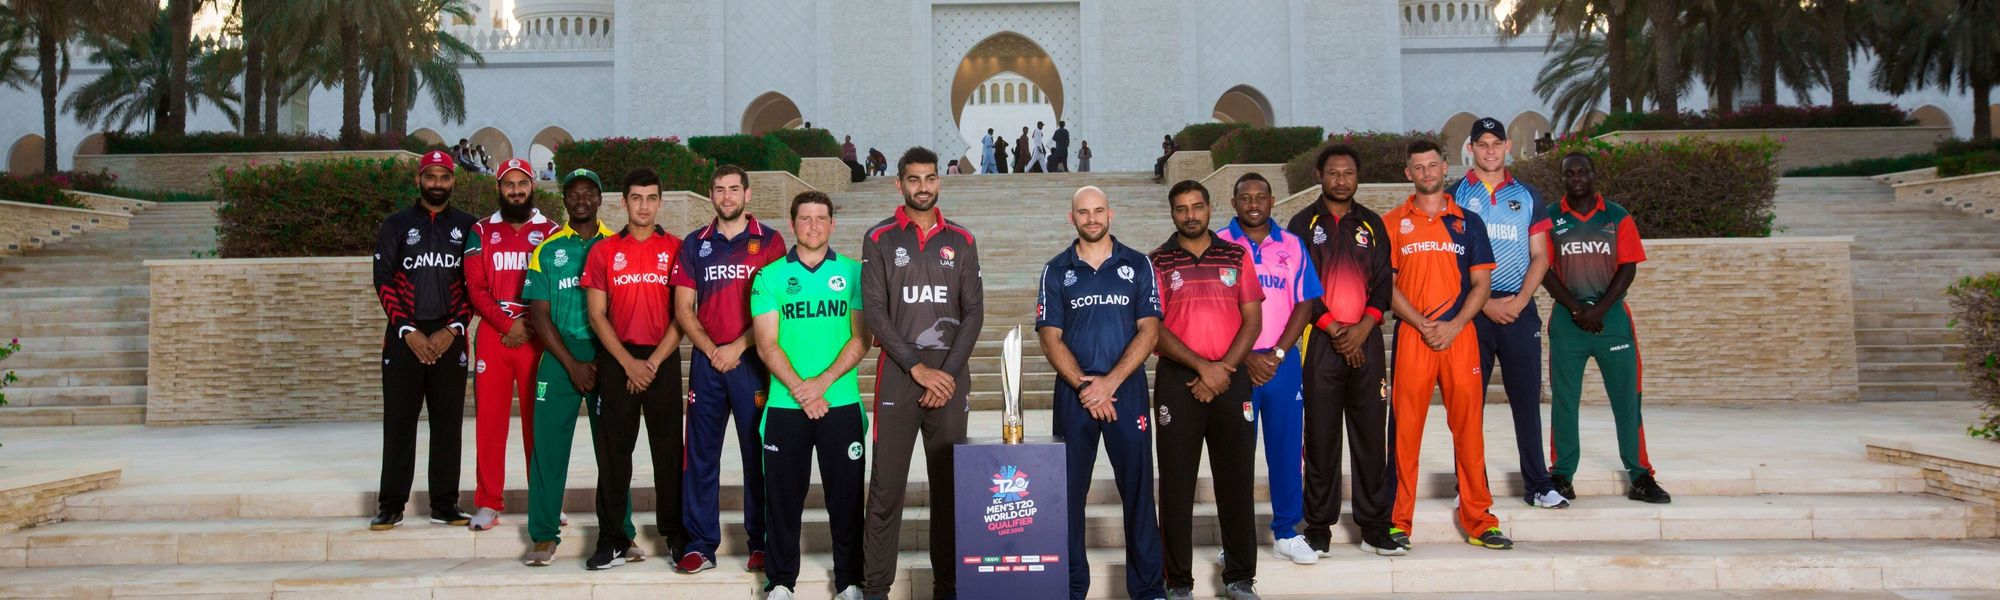 T20WC Qualifier captains